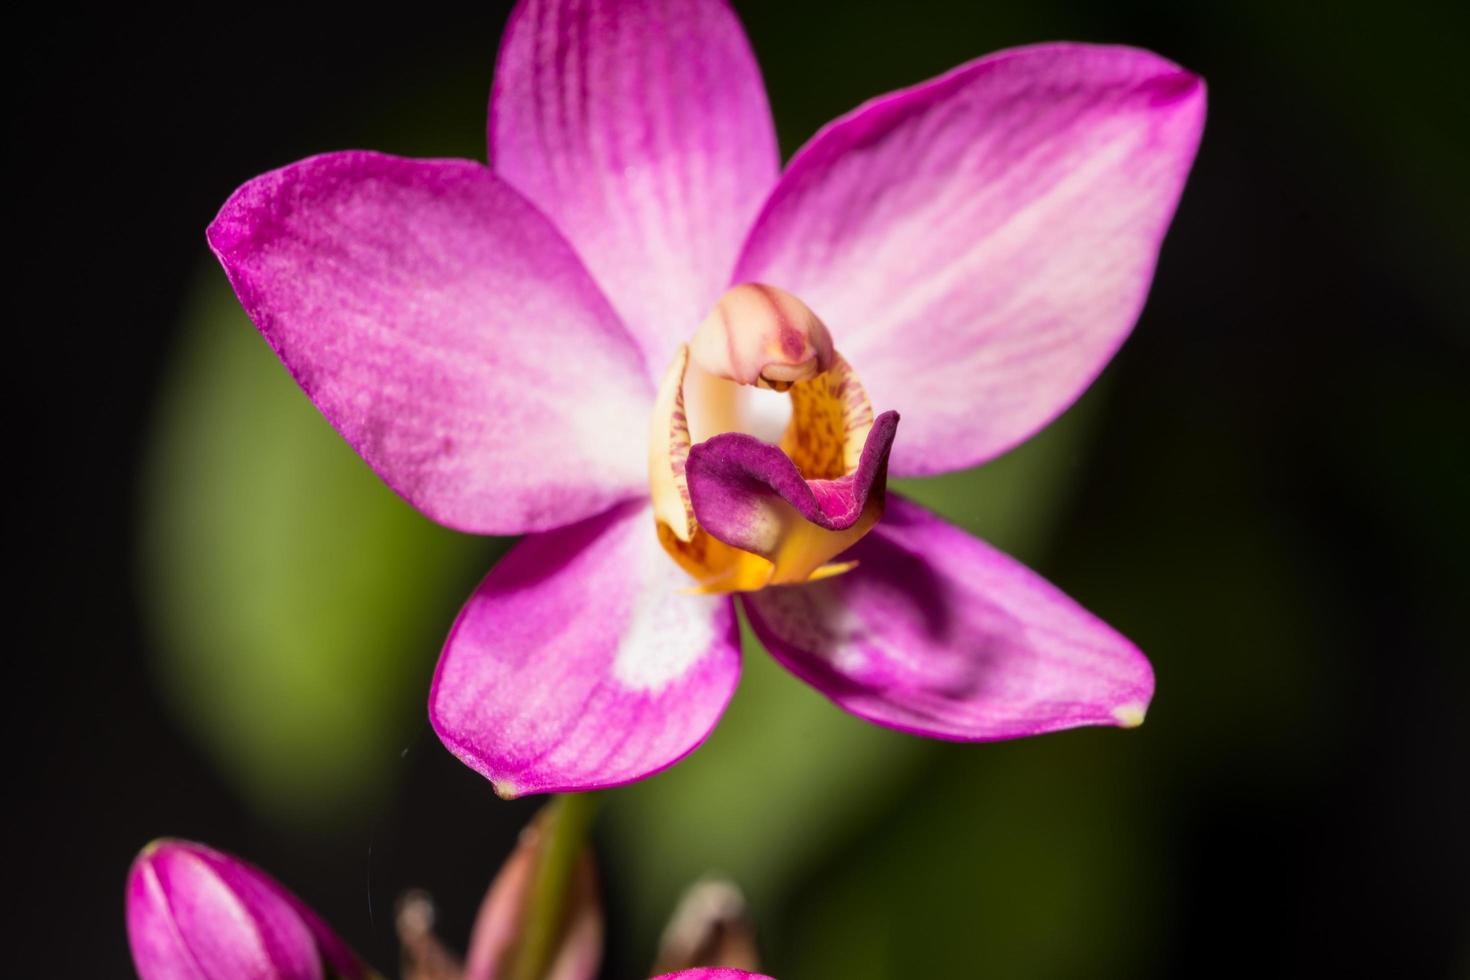 Pink orchid close-up photo